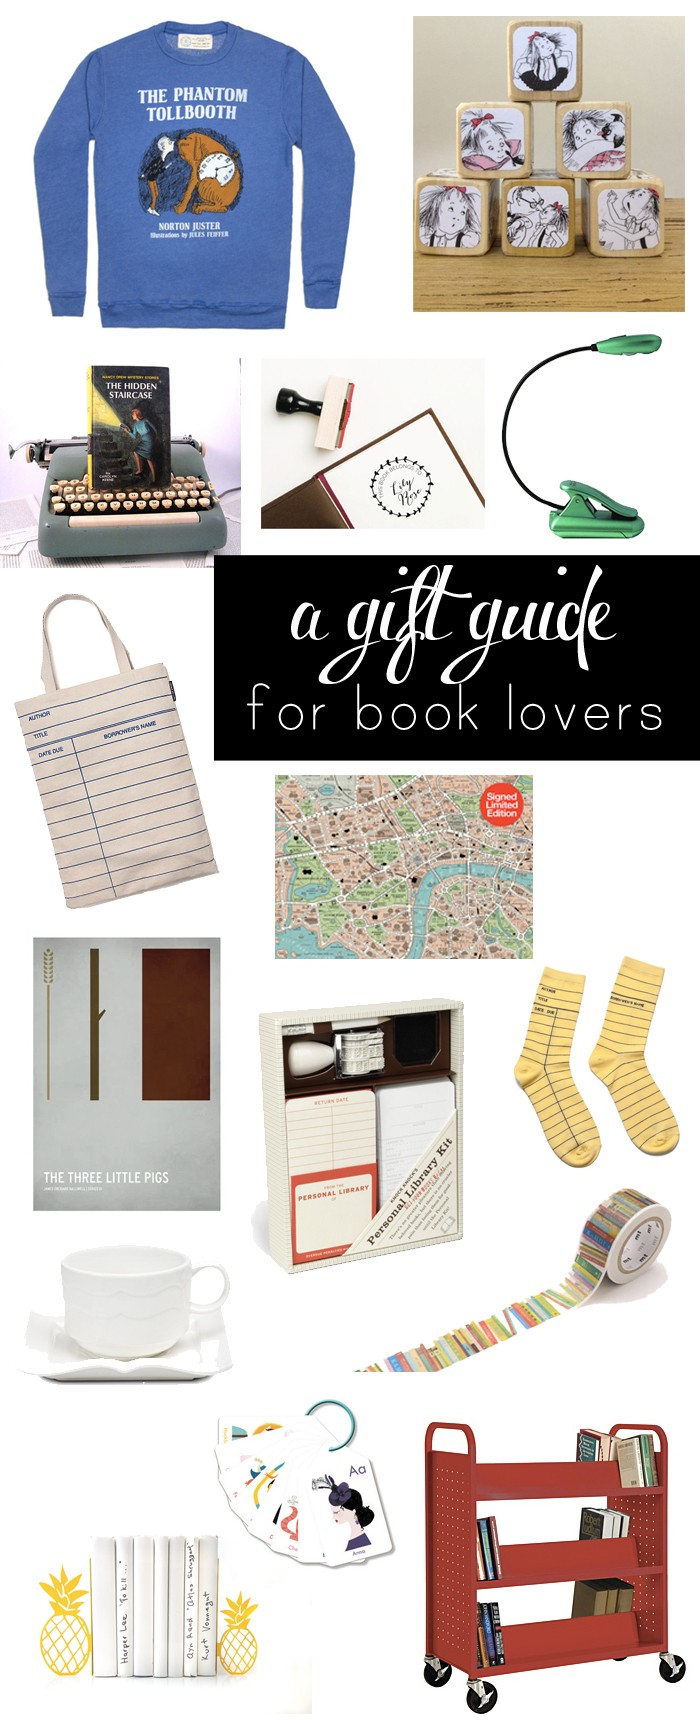 Have a book lover in your life but afraid of buying them a book they already own? Try one of these awesome gifts instead.